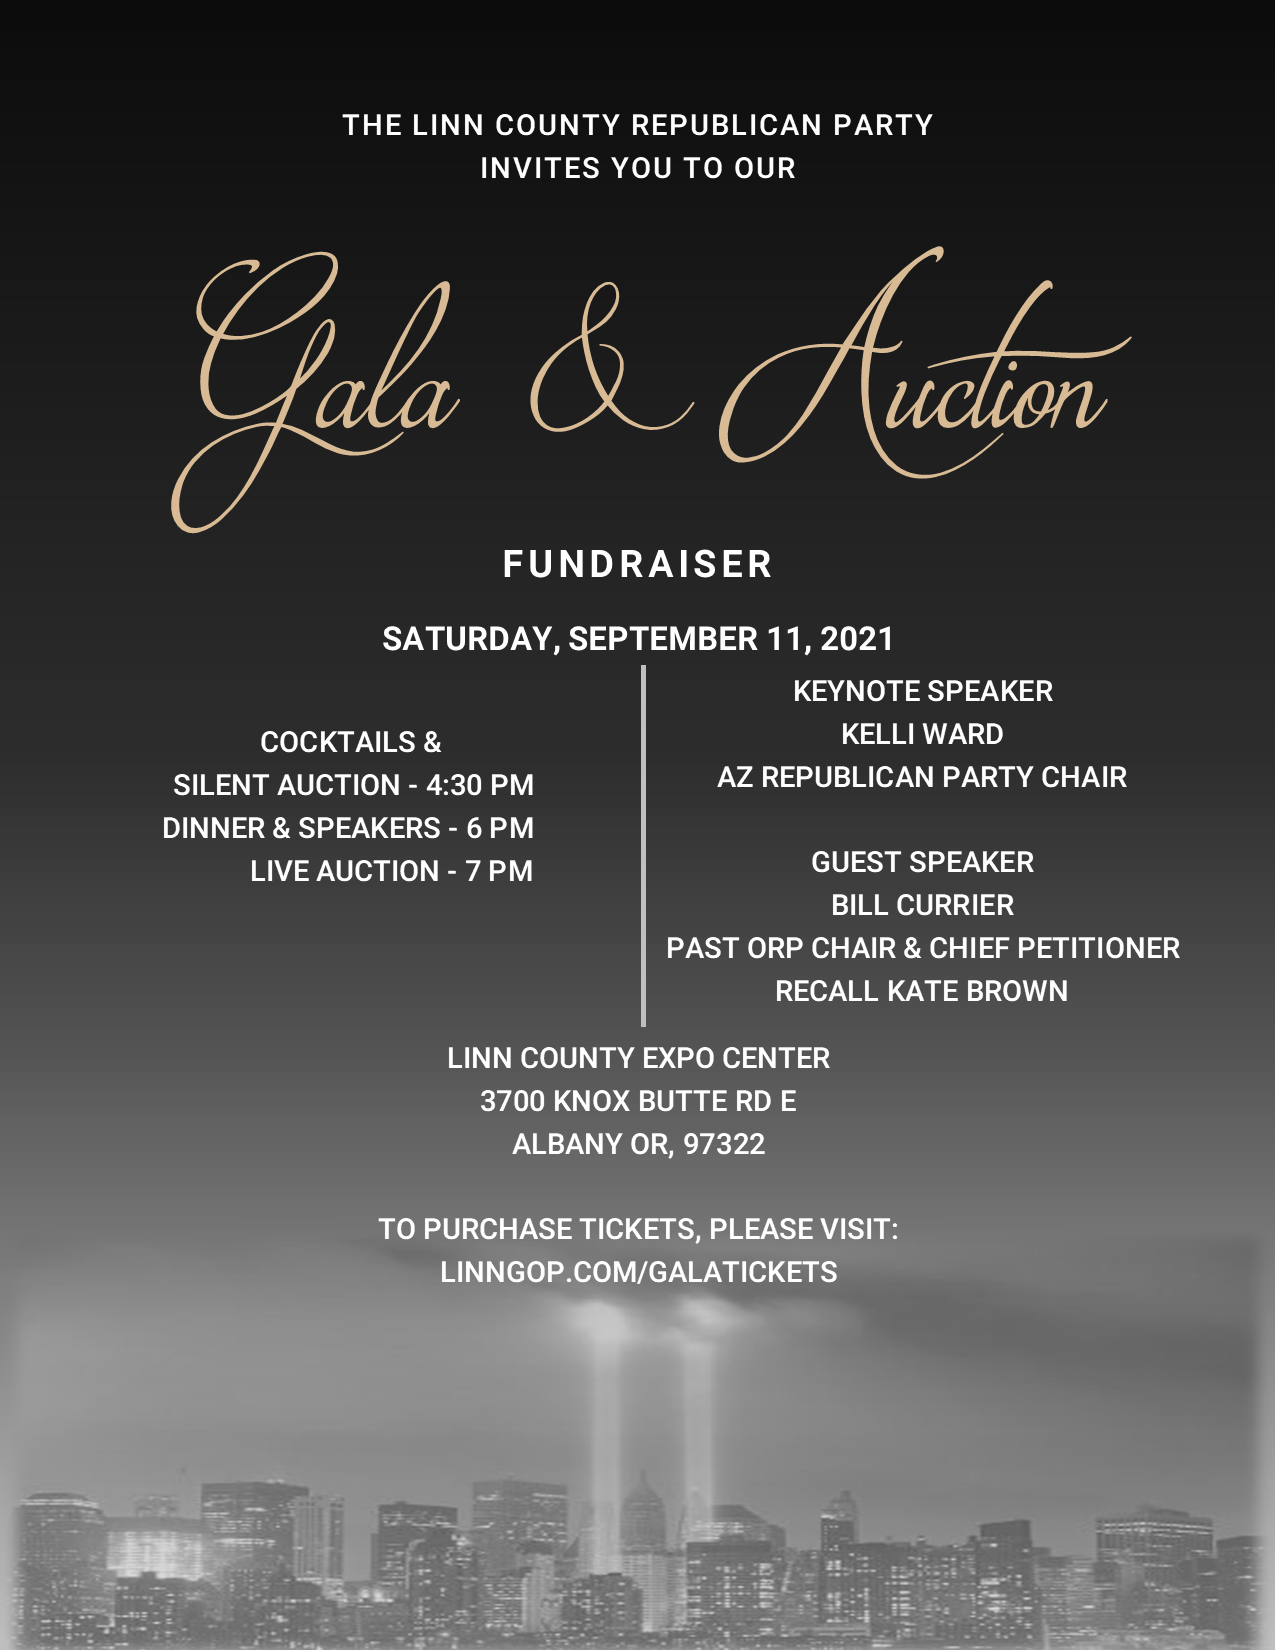 Gala_invite_with_Speakers.png